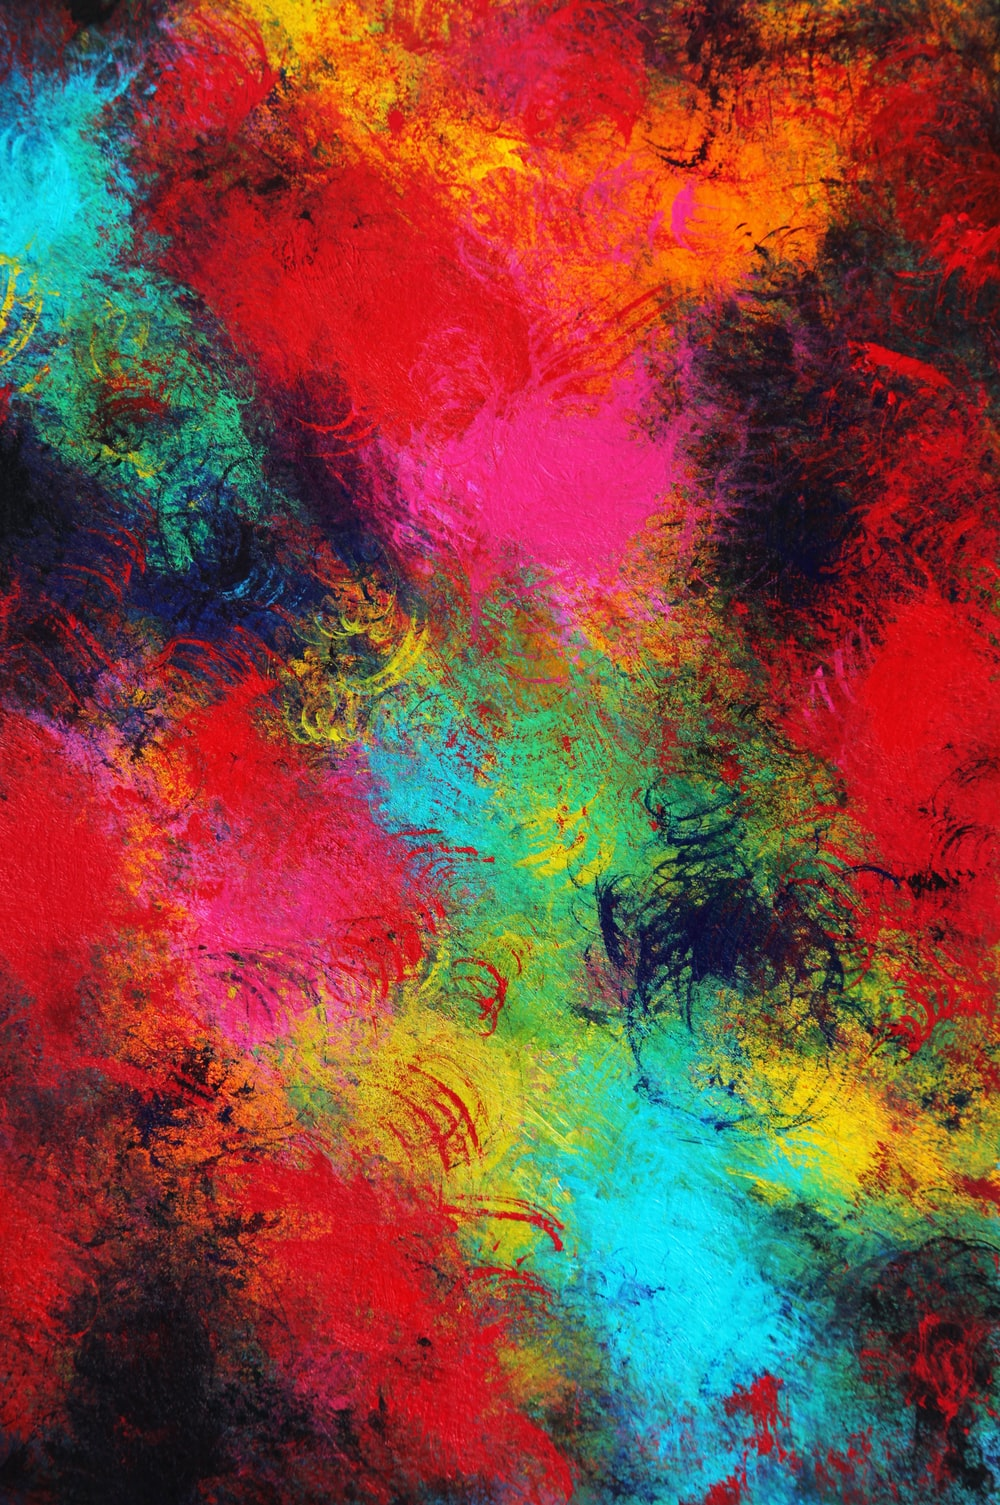 red yellow and blue abstract painting